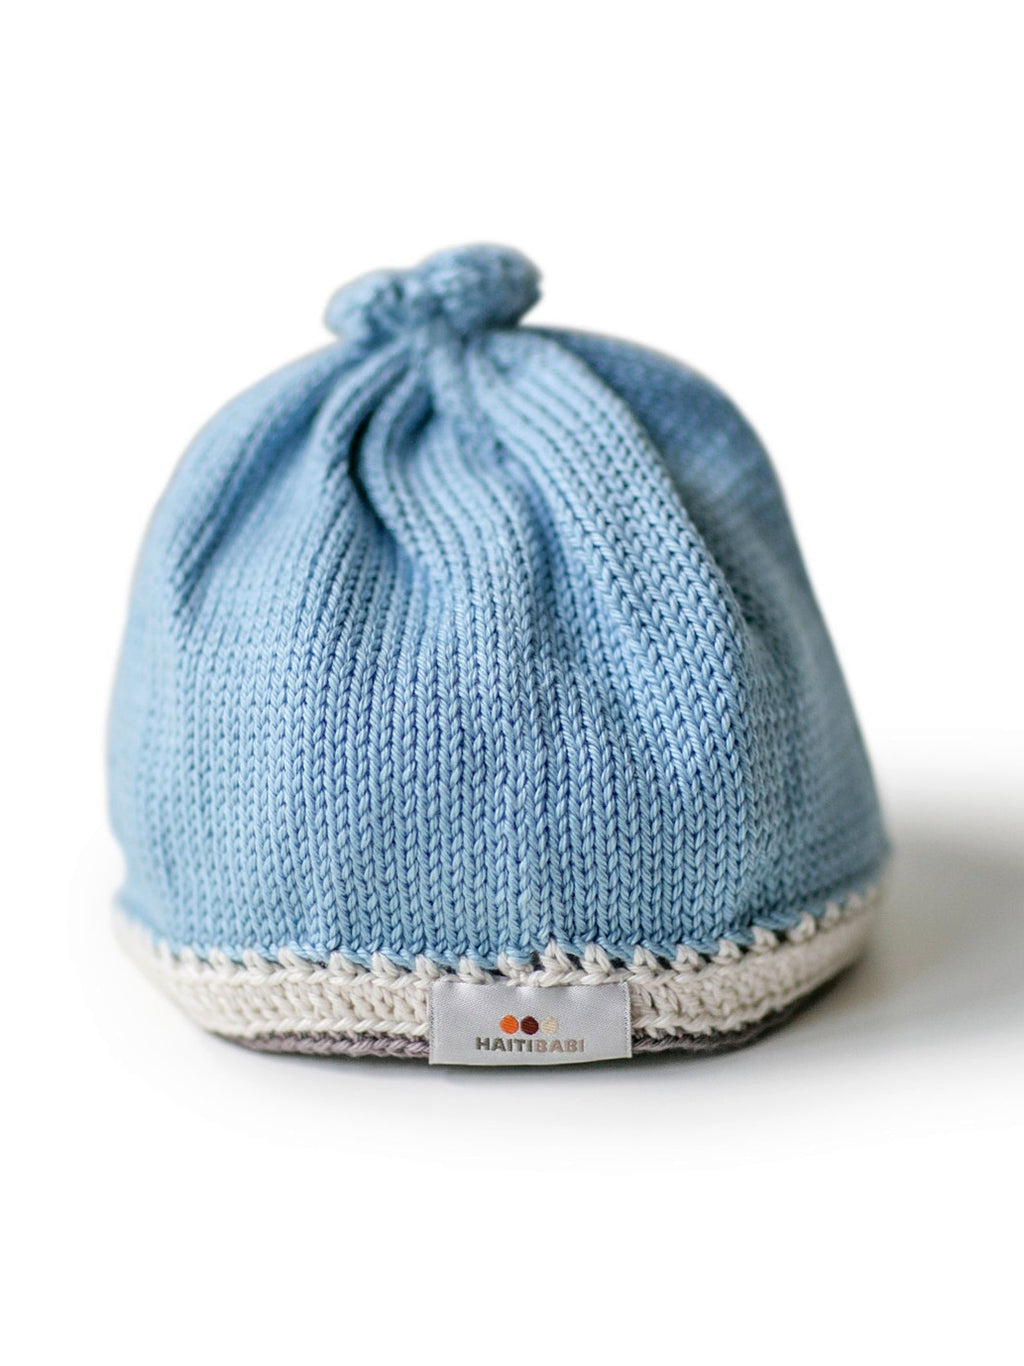 Hand-knit Pima Cotton Baby Hat (light blue)